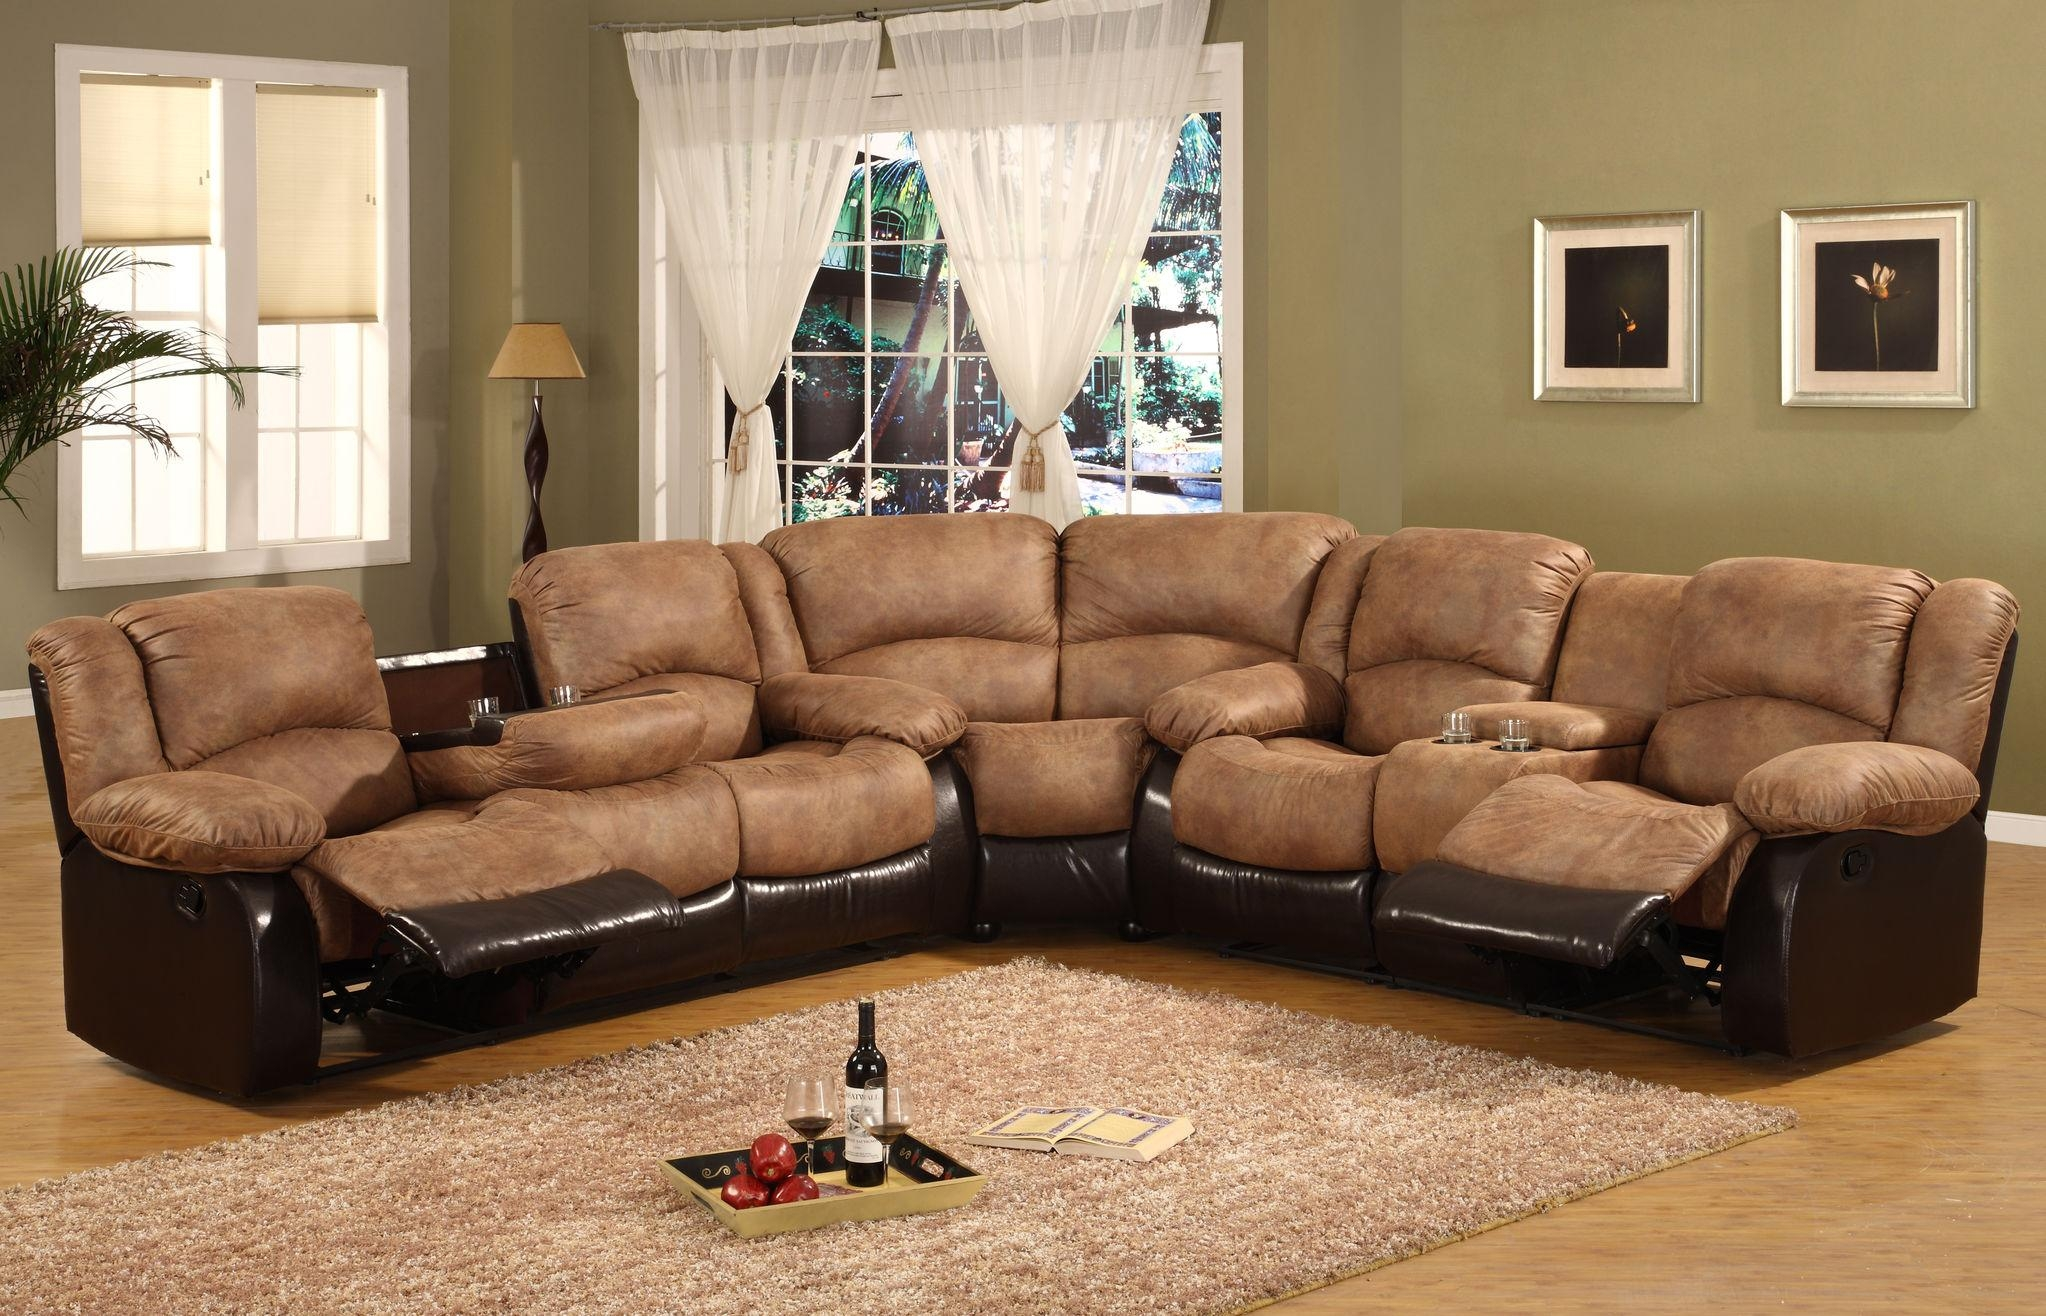 Lazy Boy Recliner Sofa Leather | Tehranmix Decoration Regarding Lazyboy Sectional Sofas (Image 12 of 20)